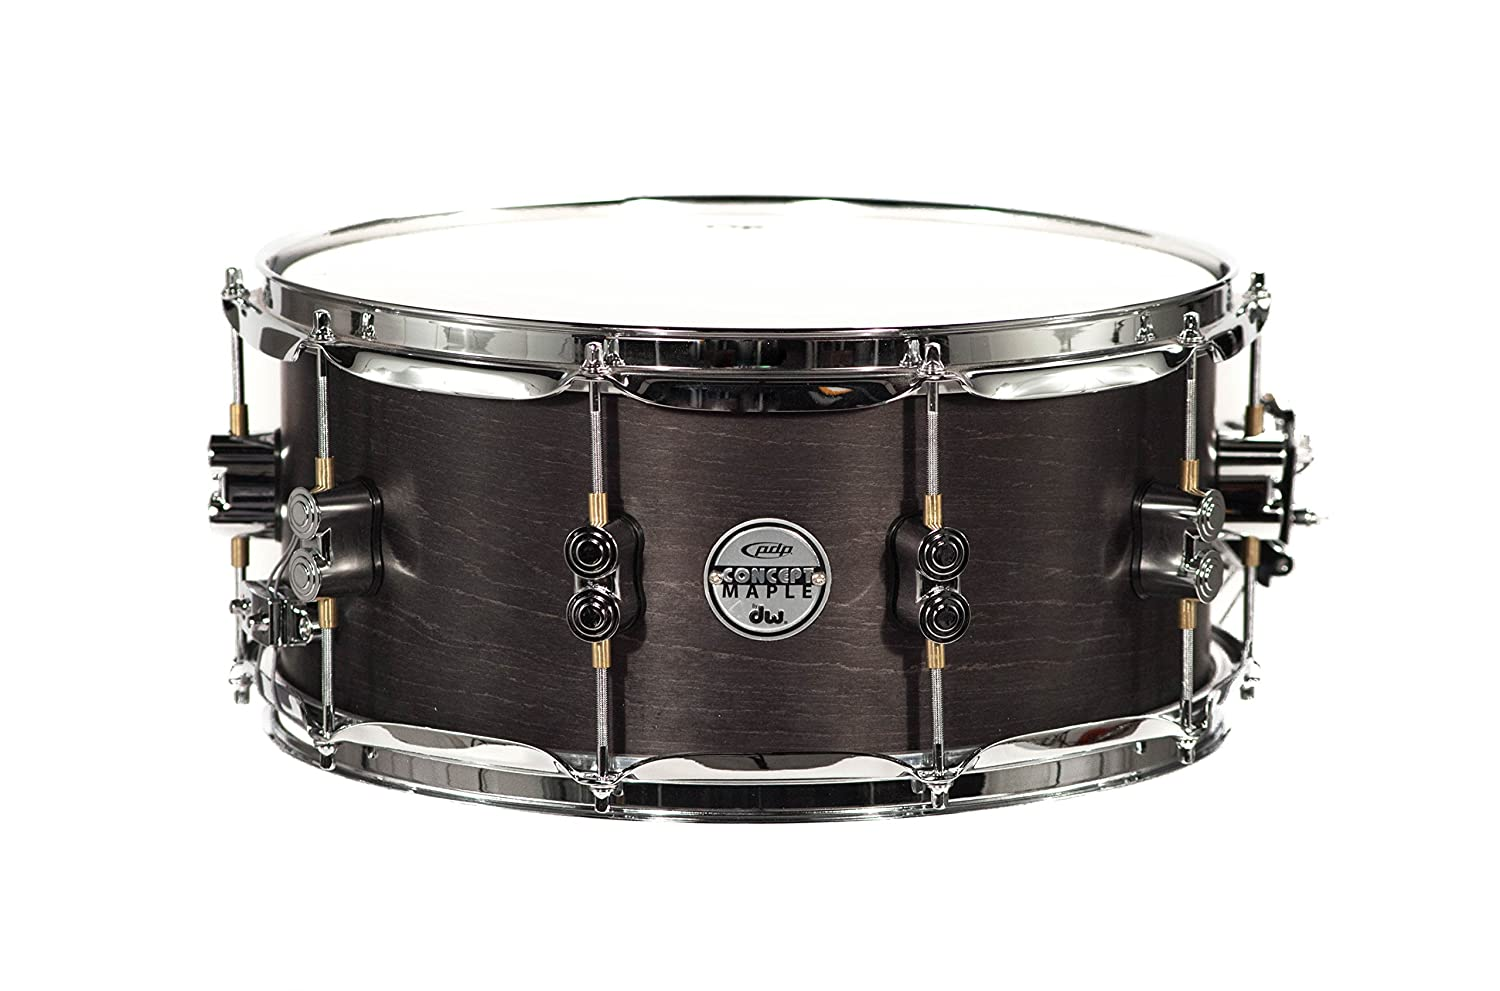 PDP By DW Black Wax Maple Snare Drum 6.5x14 Pacific Drums PDSN6514BWCR